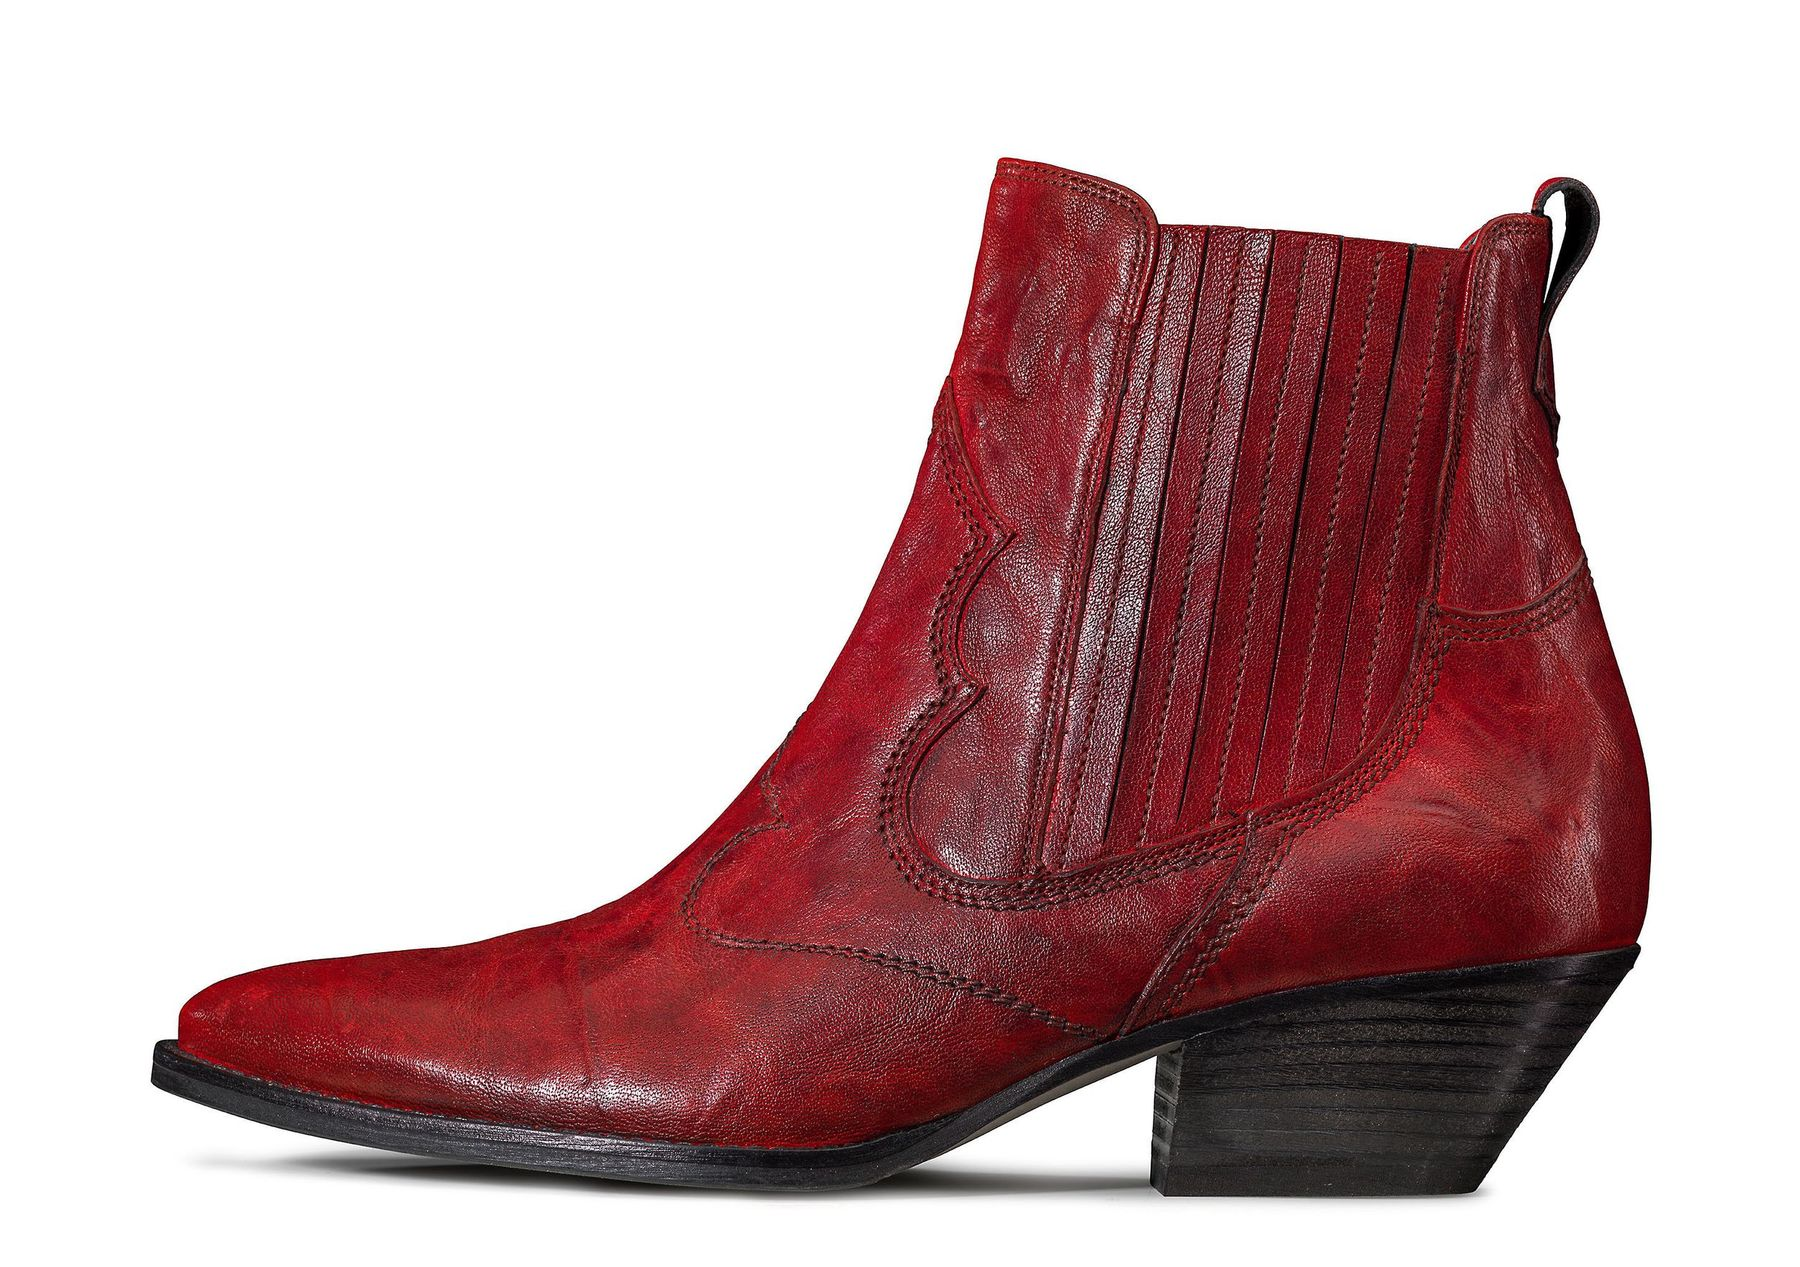 Ankle boots in red with a Western look Paul Green